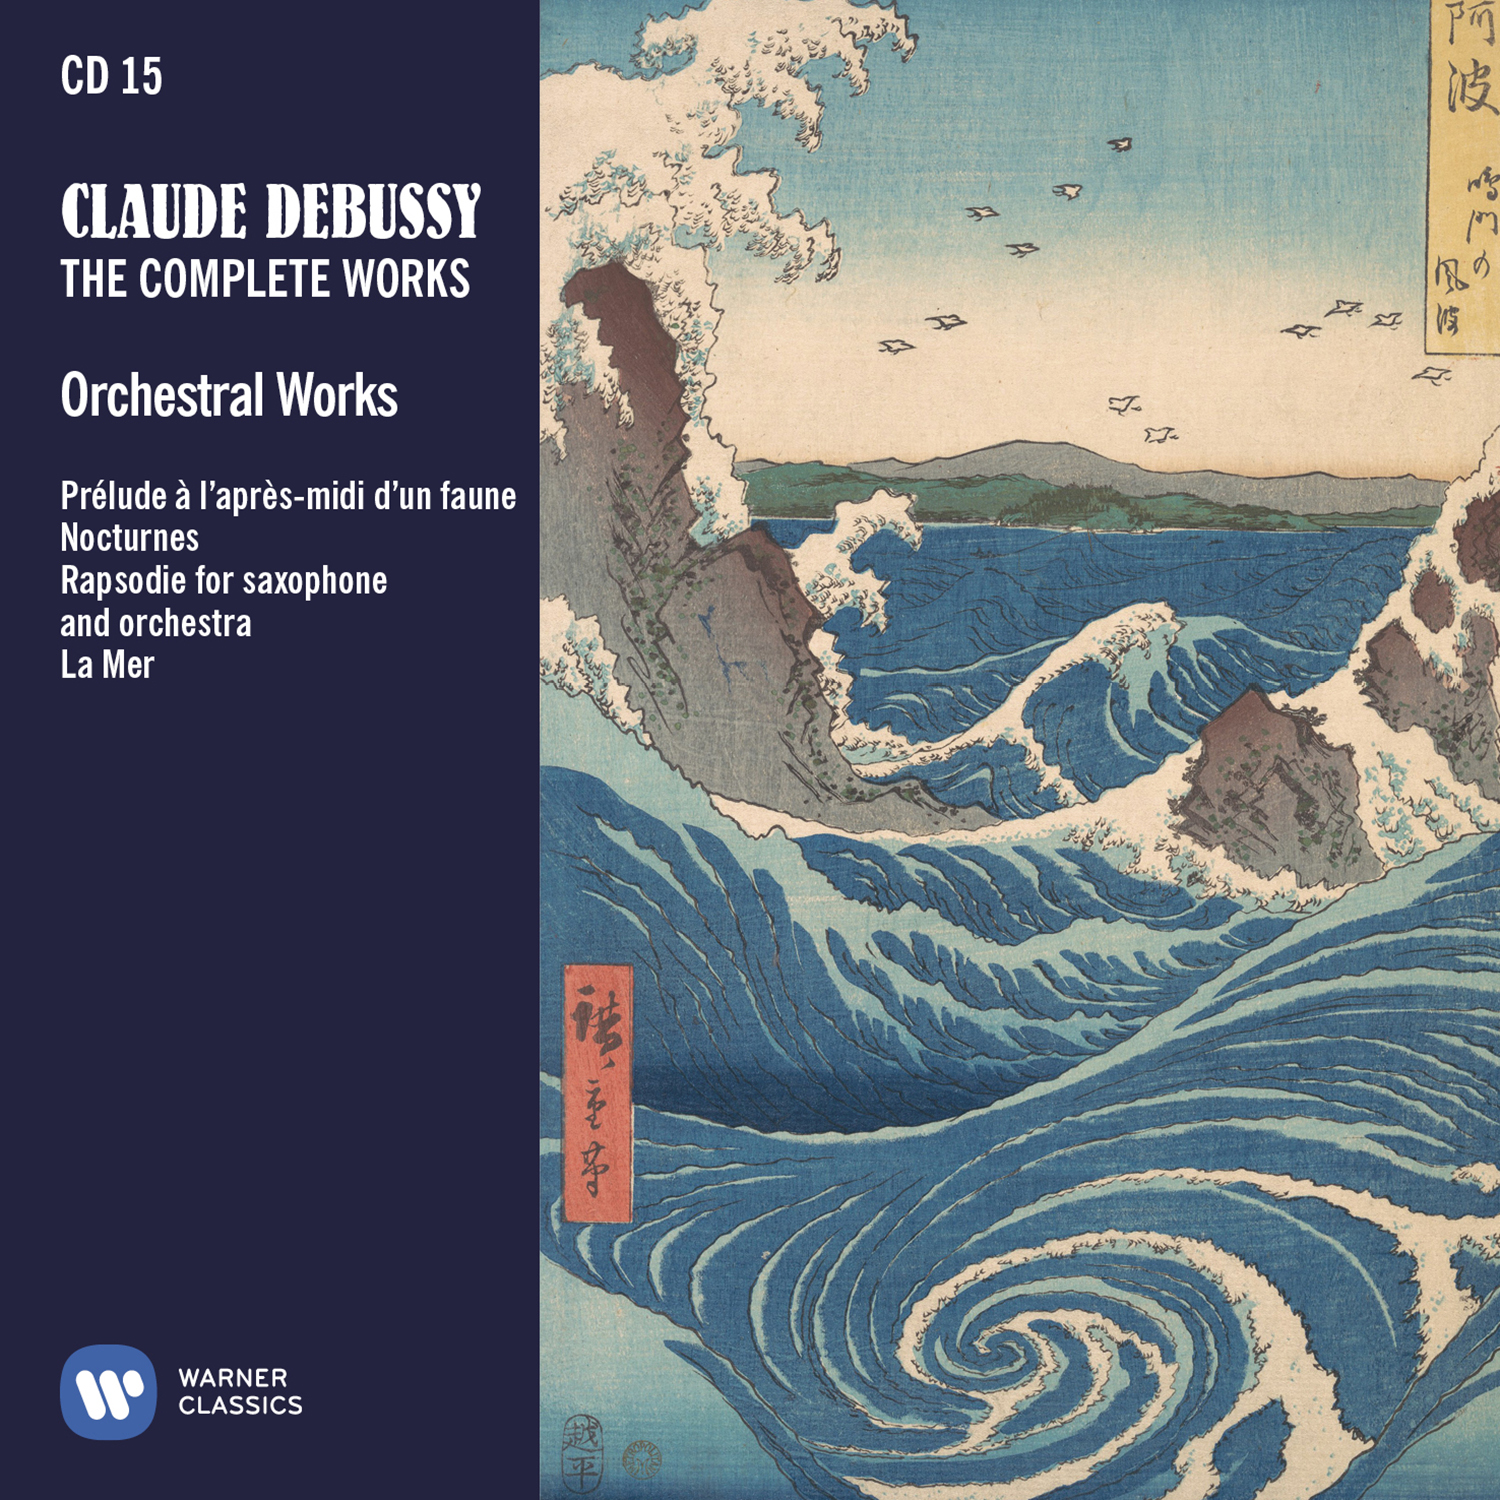 Debussy The complete works - Cover wallet CD15.jpg